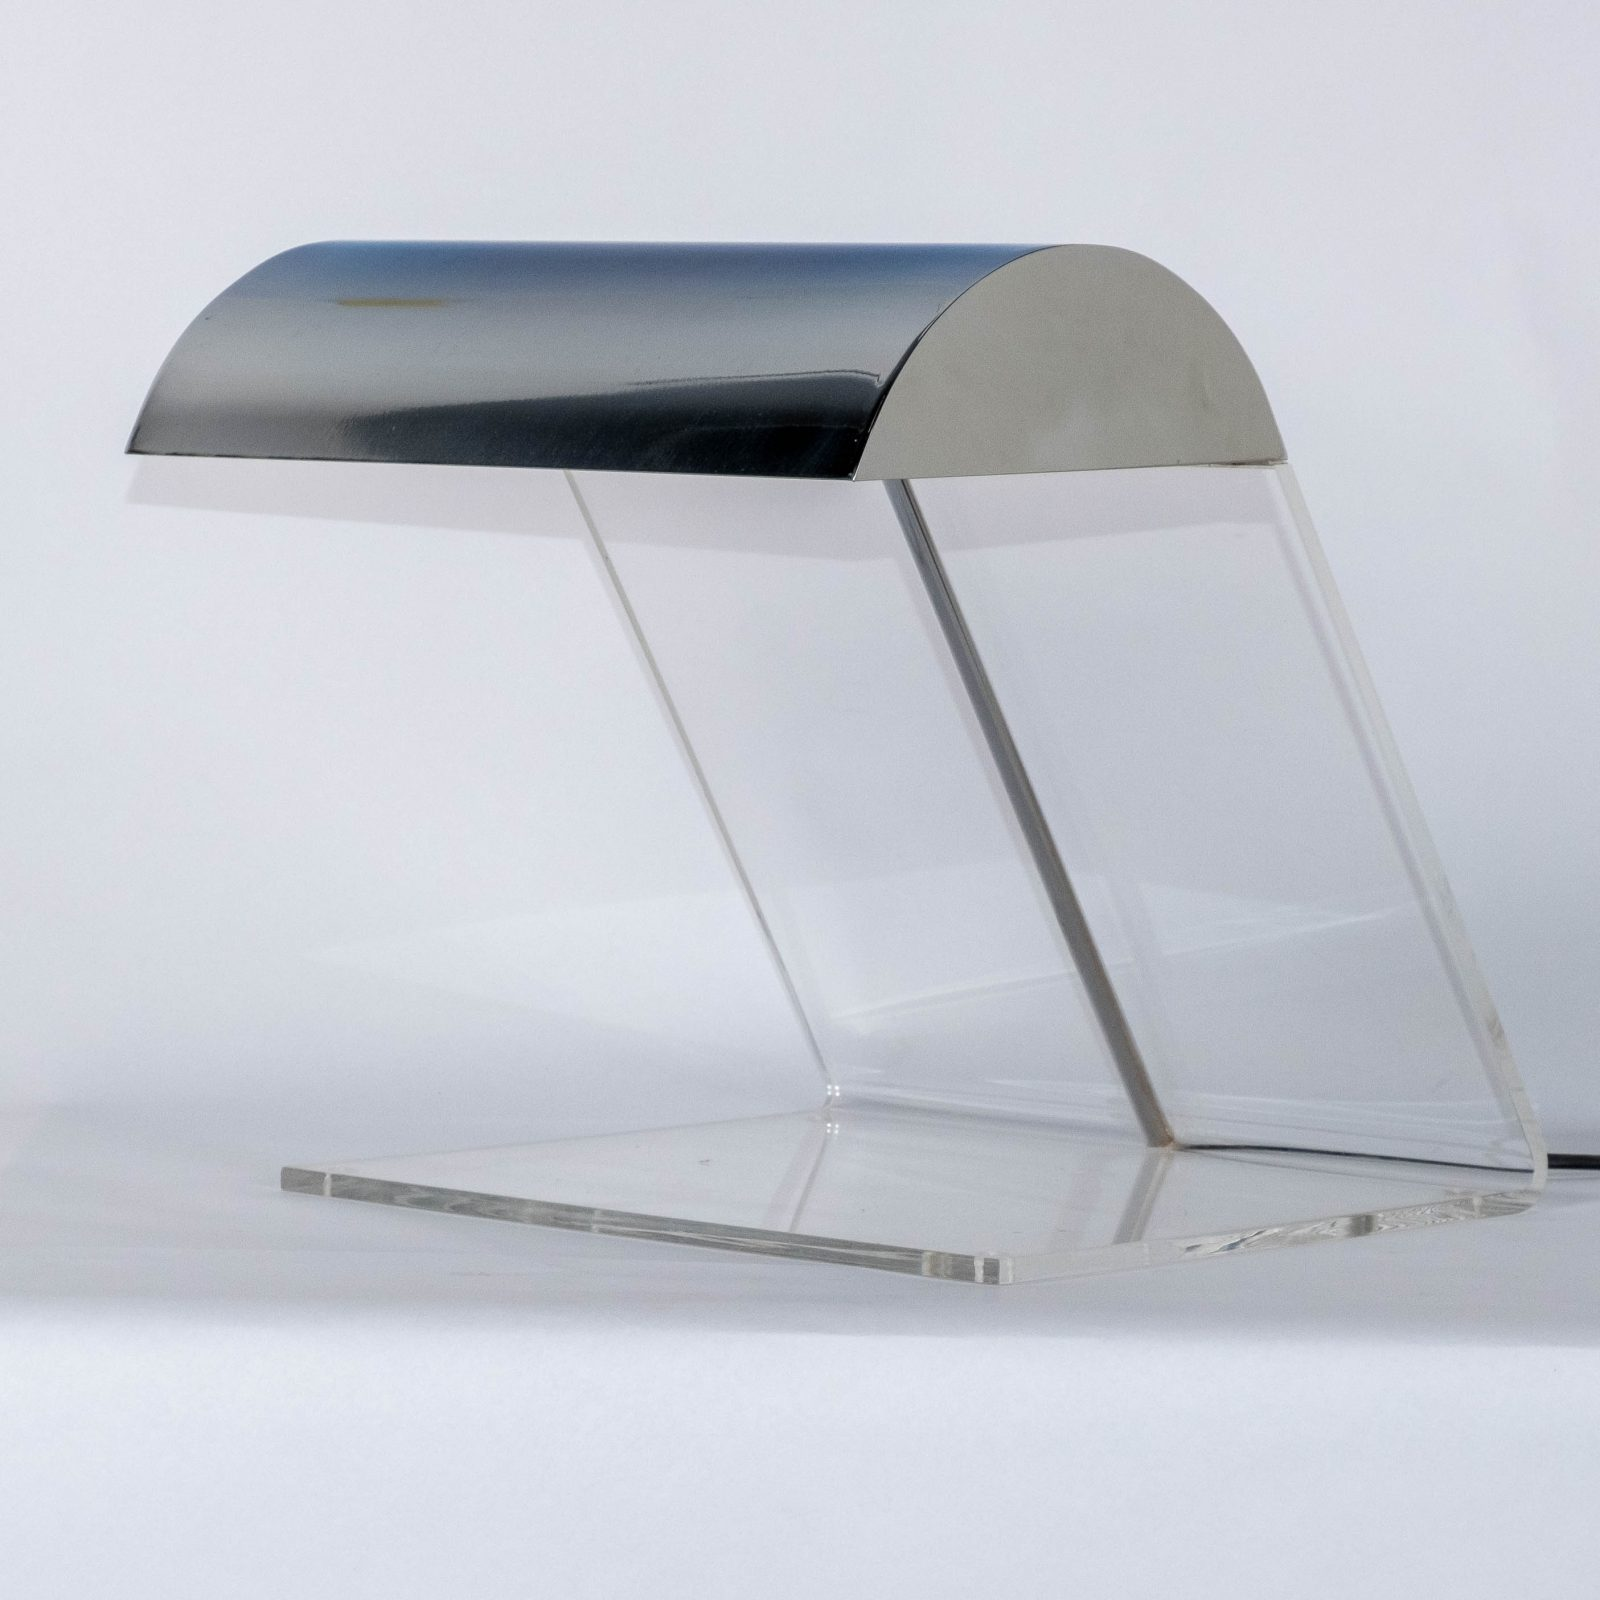 Perspex And Chrome Desk Lamp 1980s, Netherlands Hero